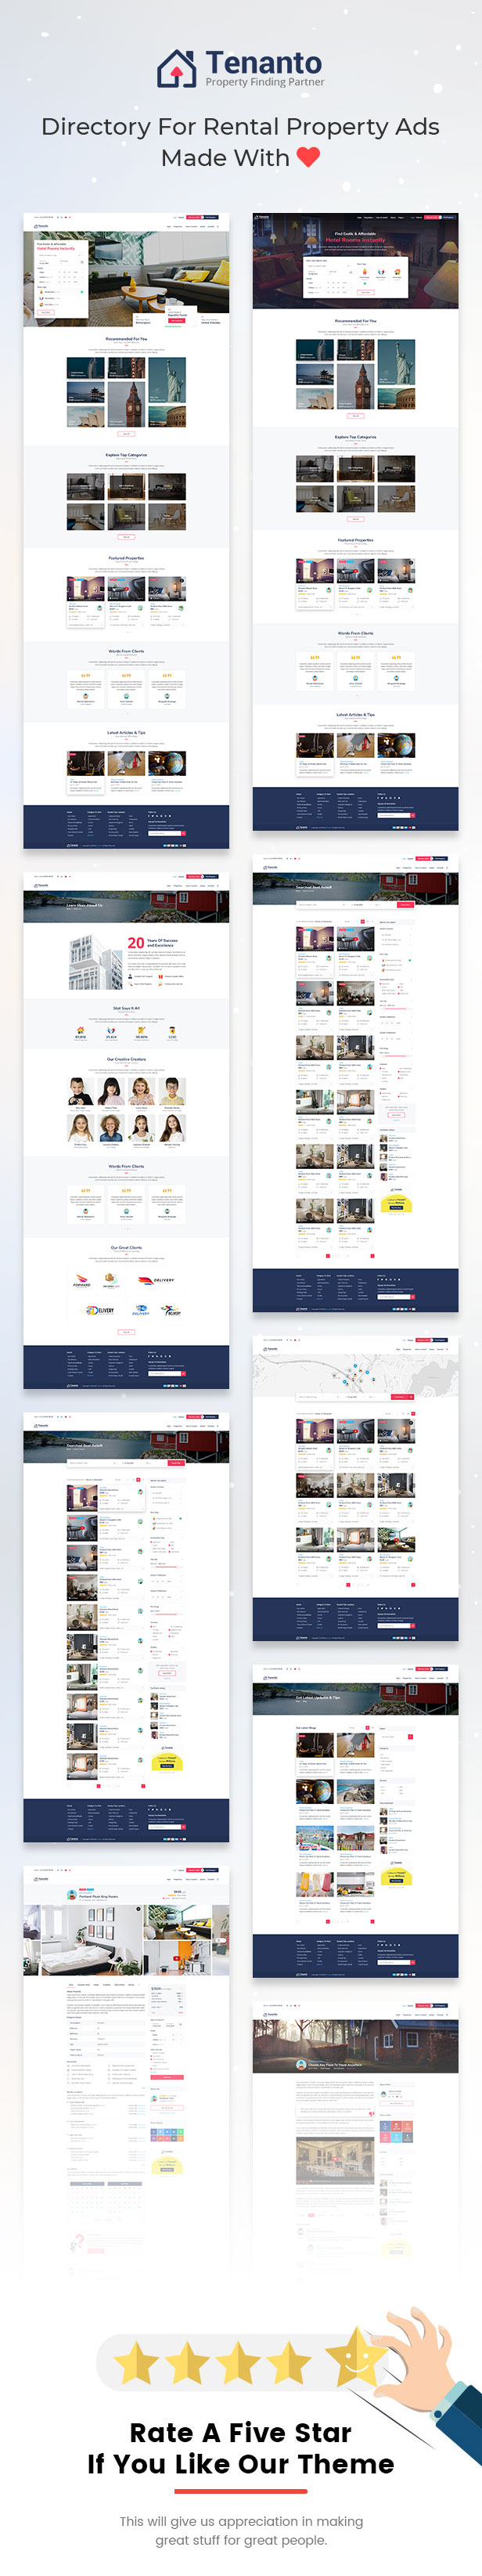 Tenanto - Homes and Property Rental Template - 4